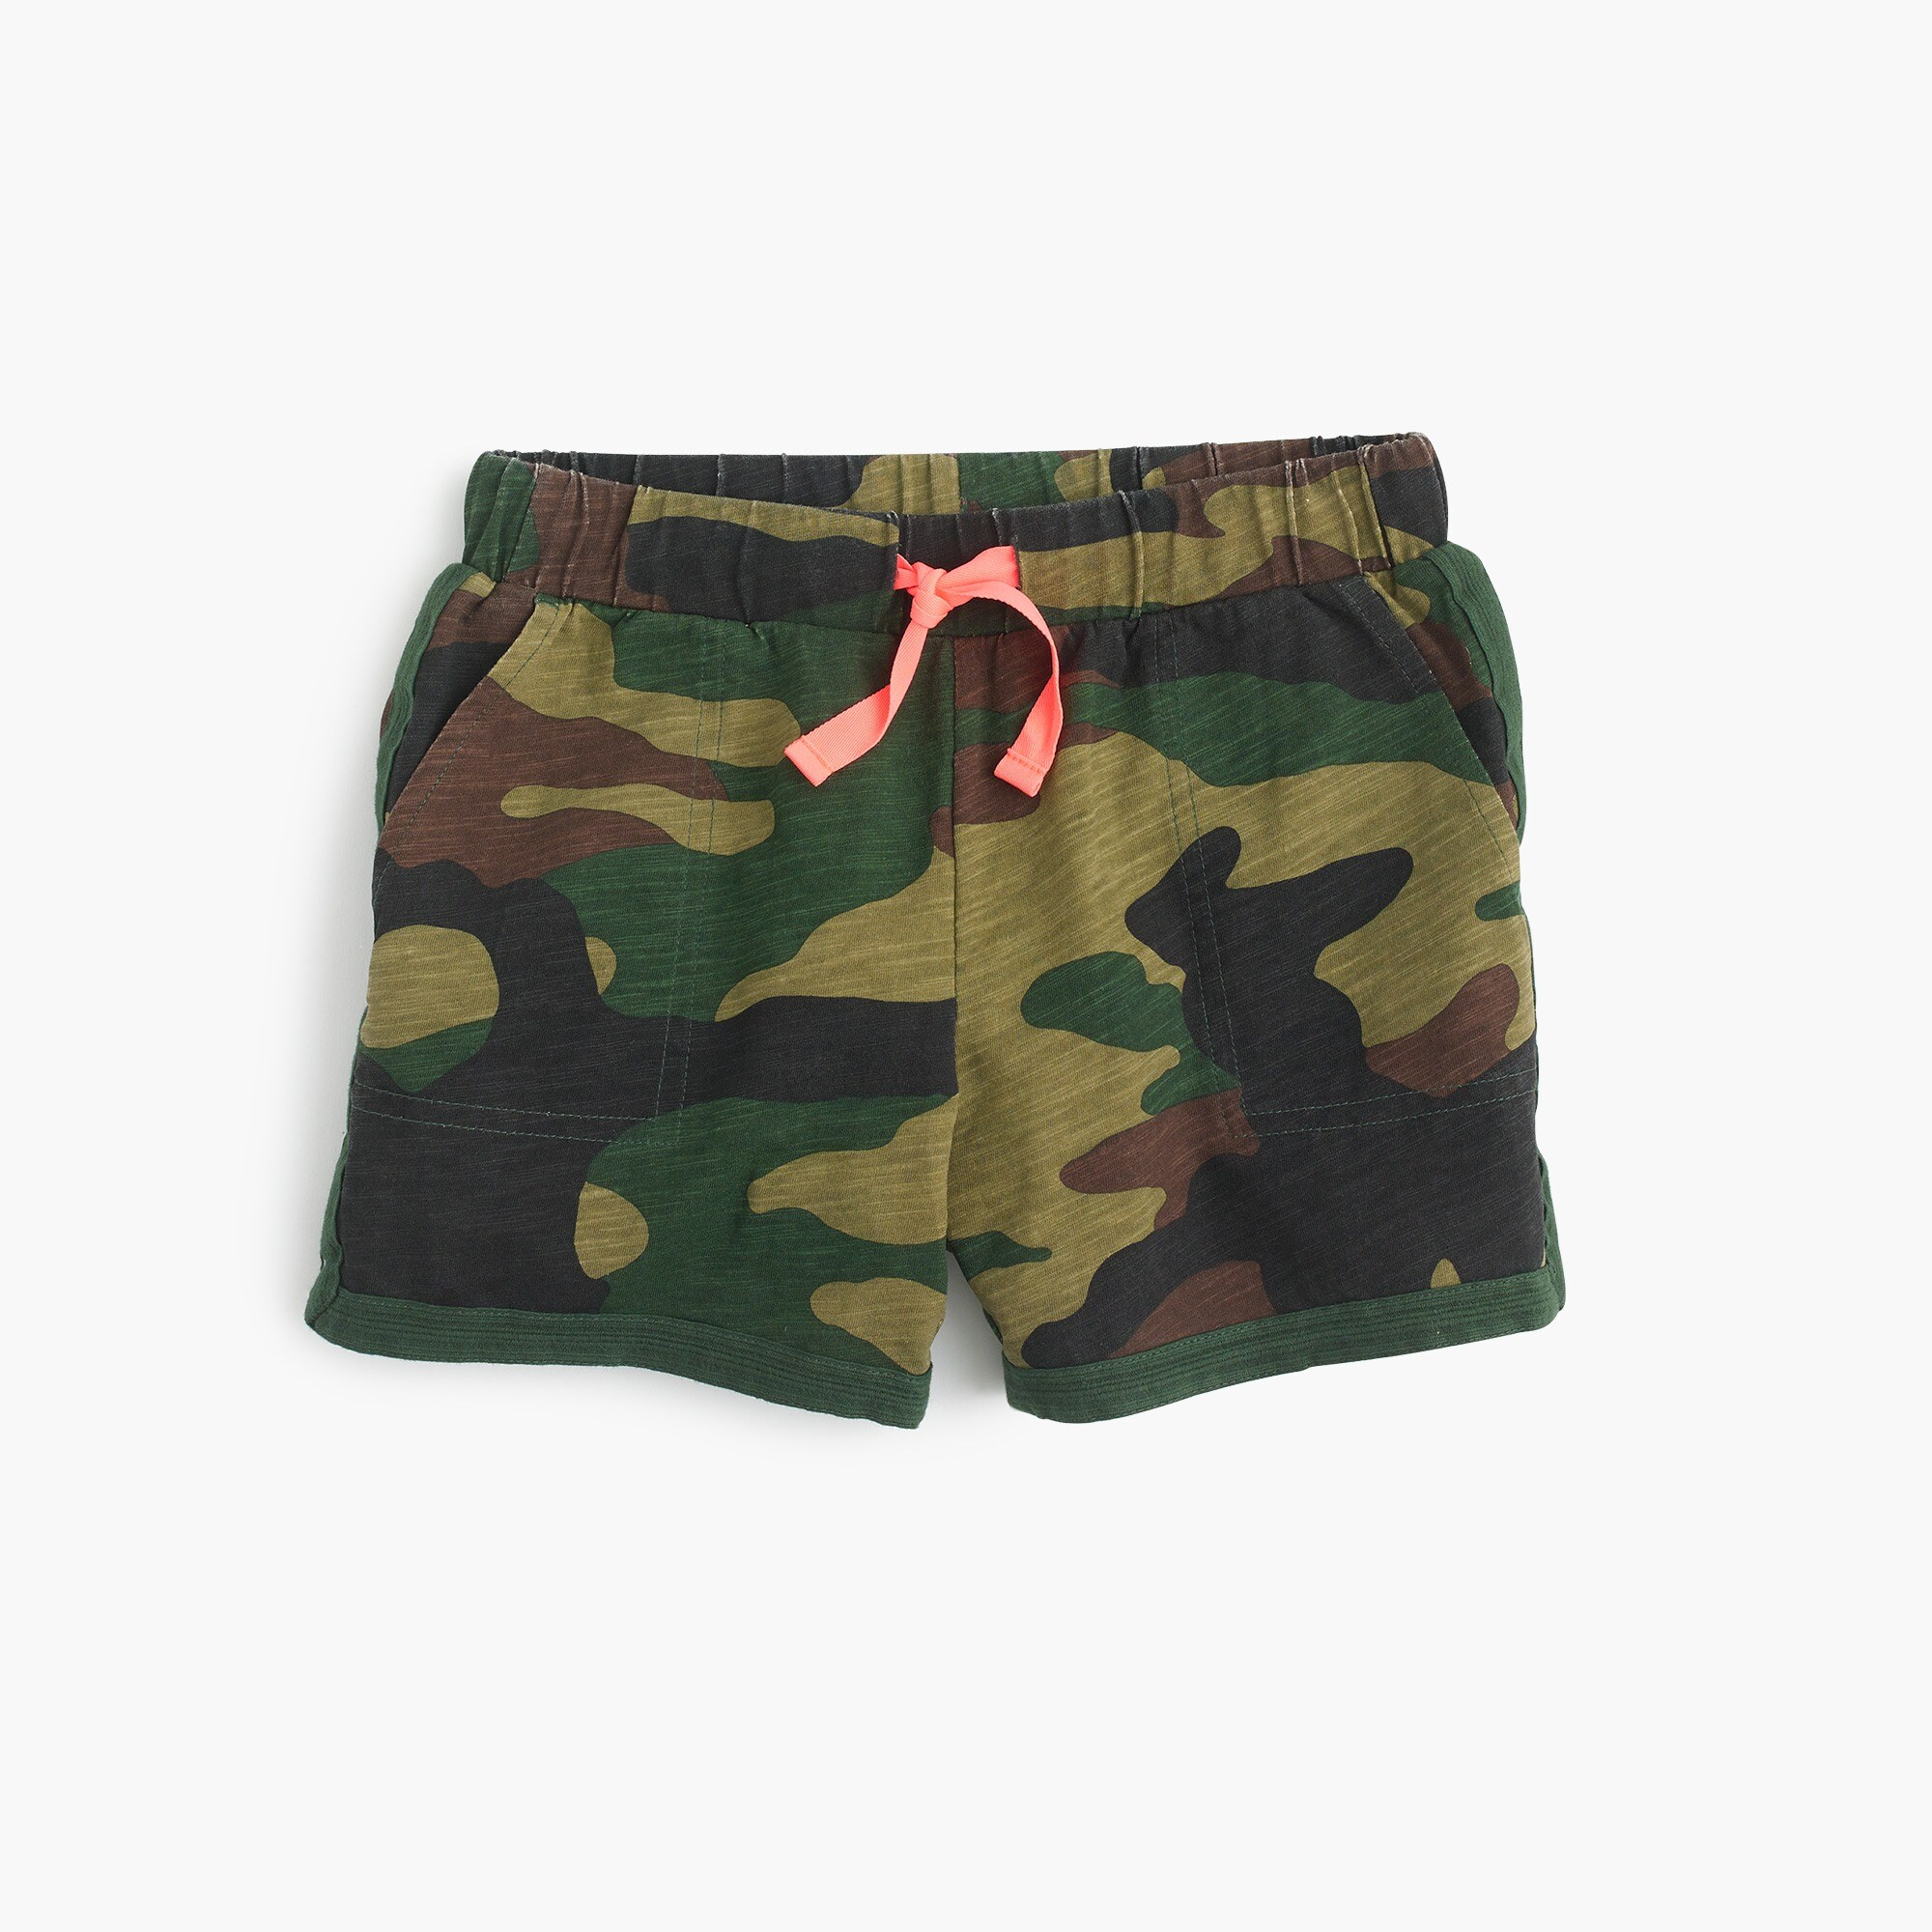 Image 1 for Girls' pull-on short in camo